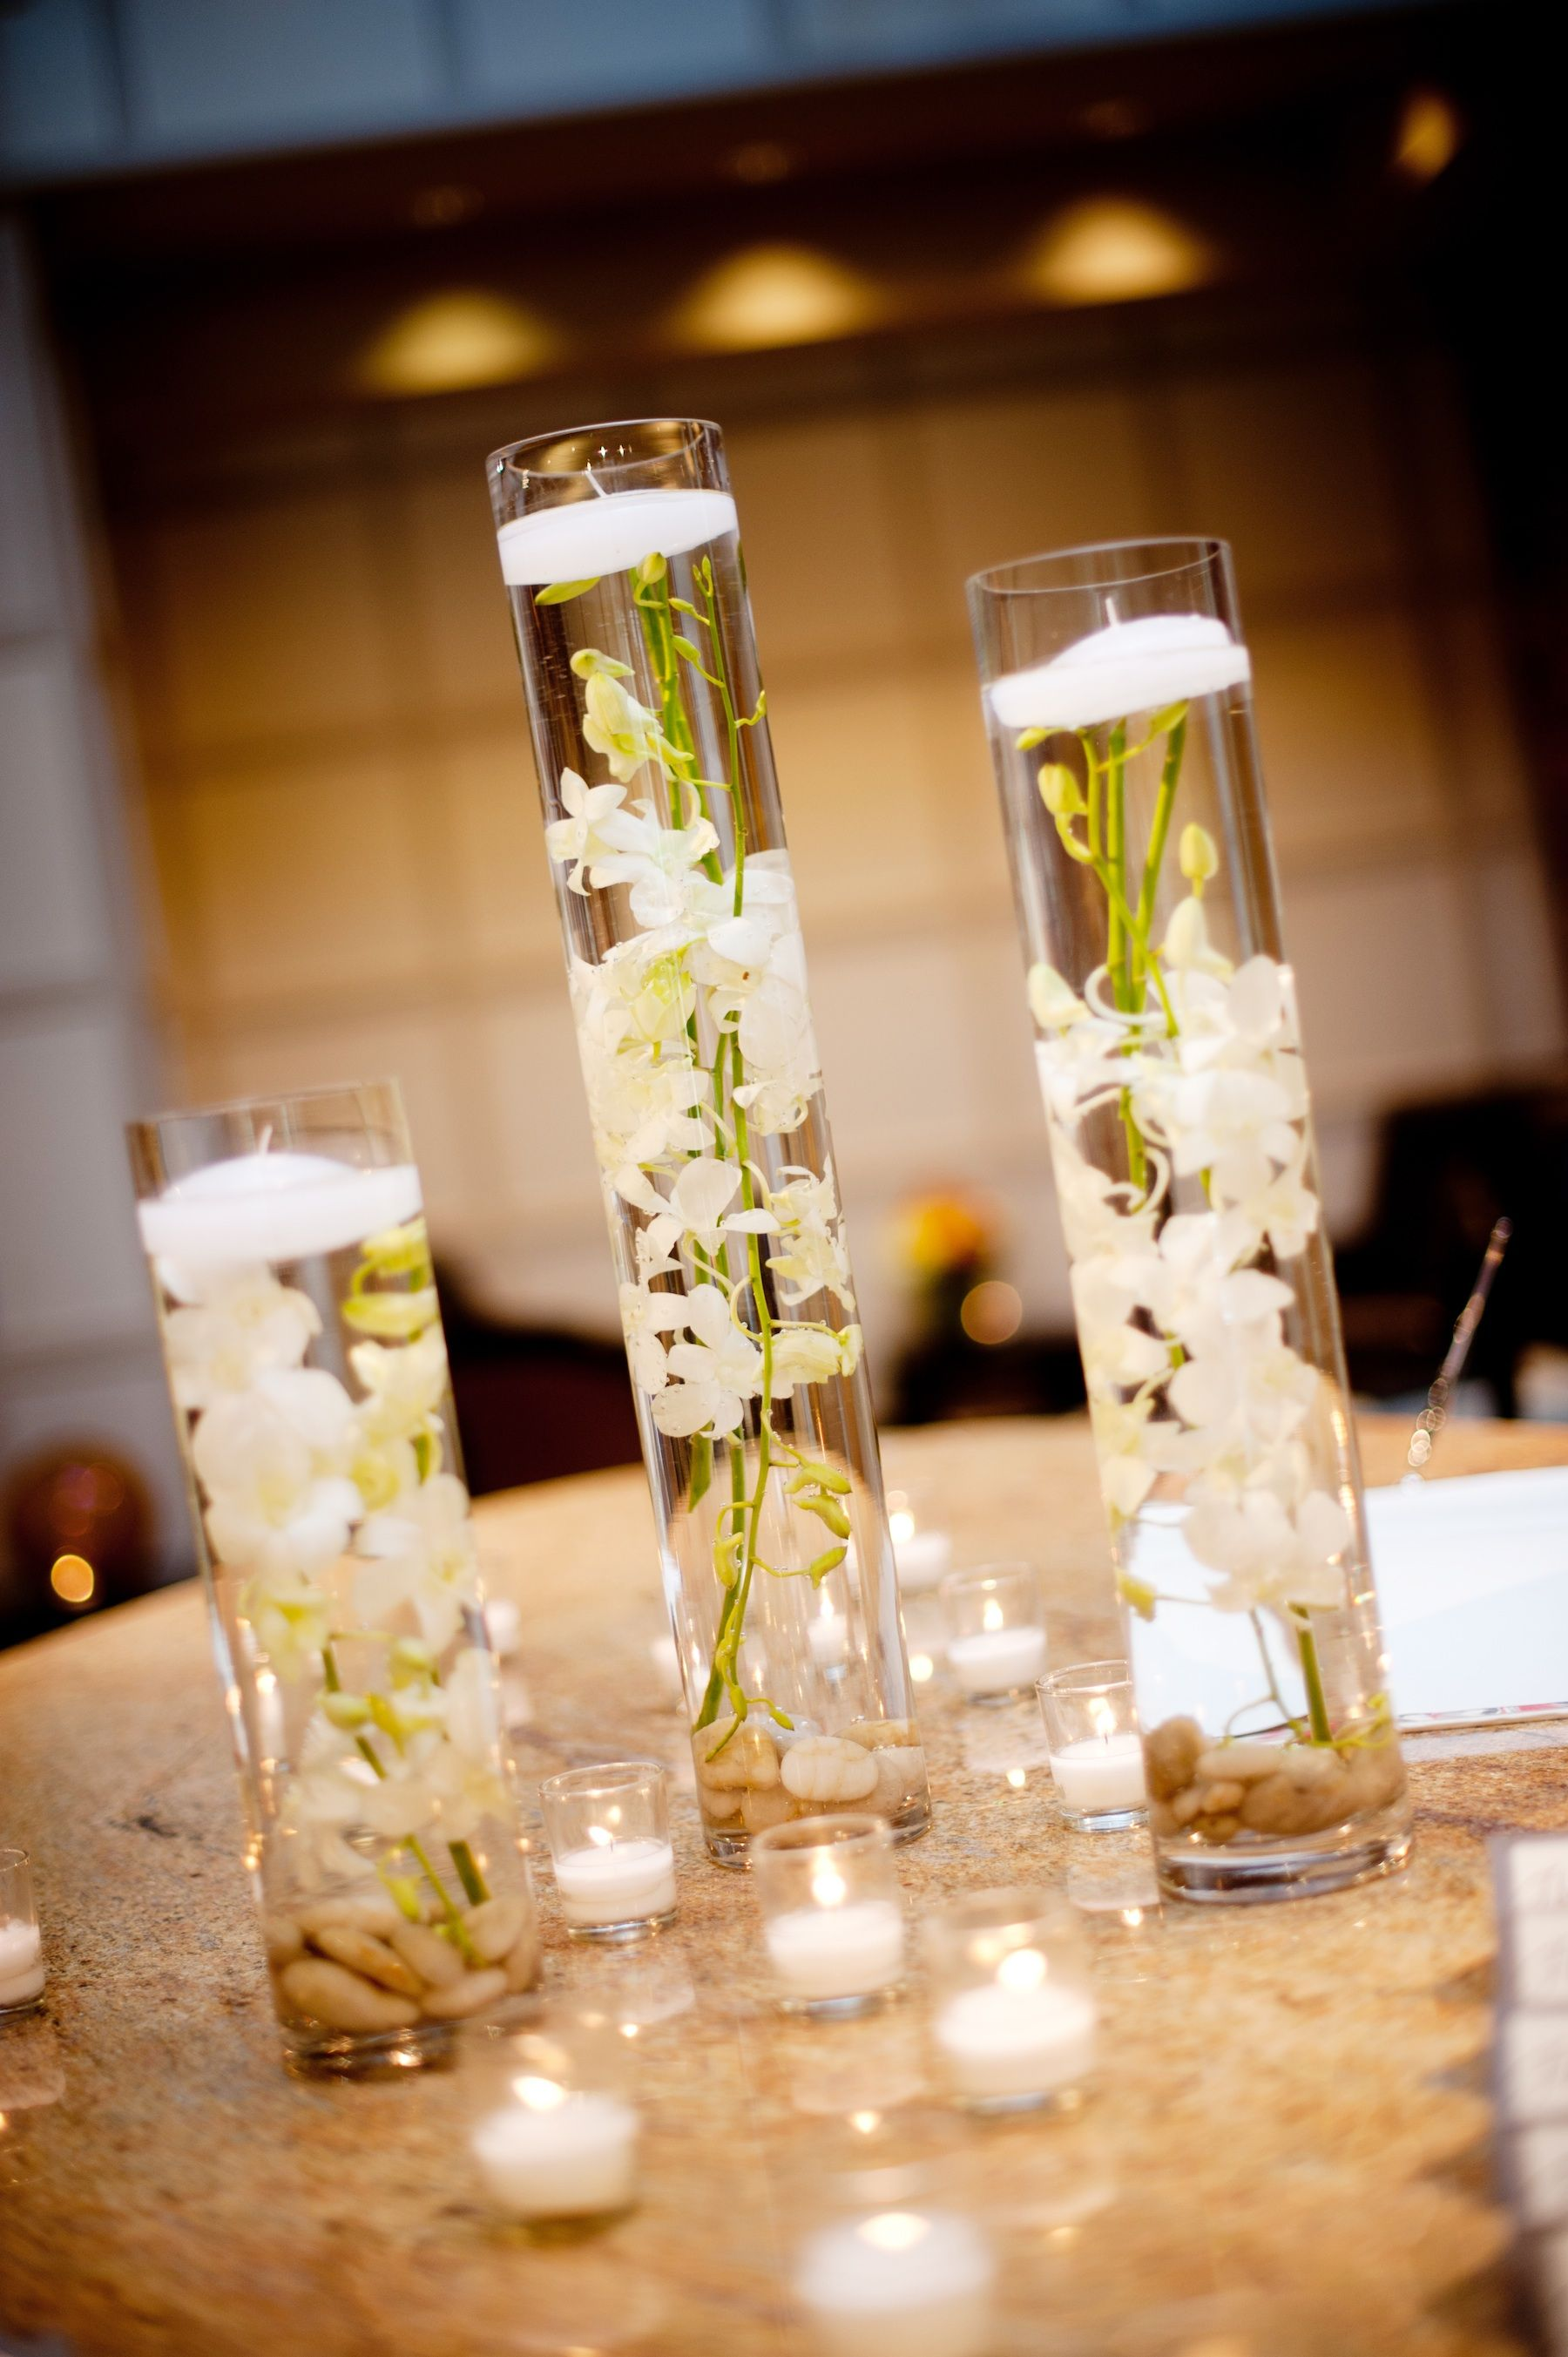 Elegant wedding centerpieces - Simple Elegant Wedding Centerpieces Up Wedding Reception Centerpieces Can Make Decorating For